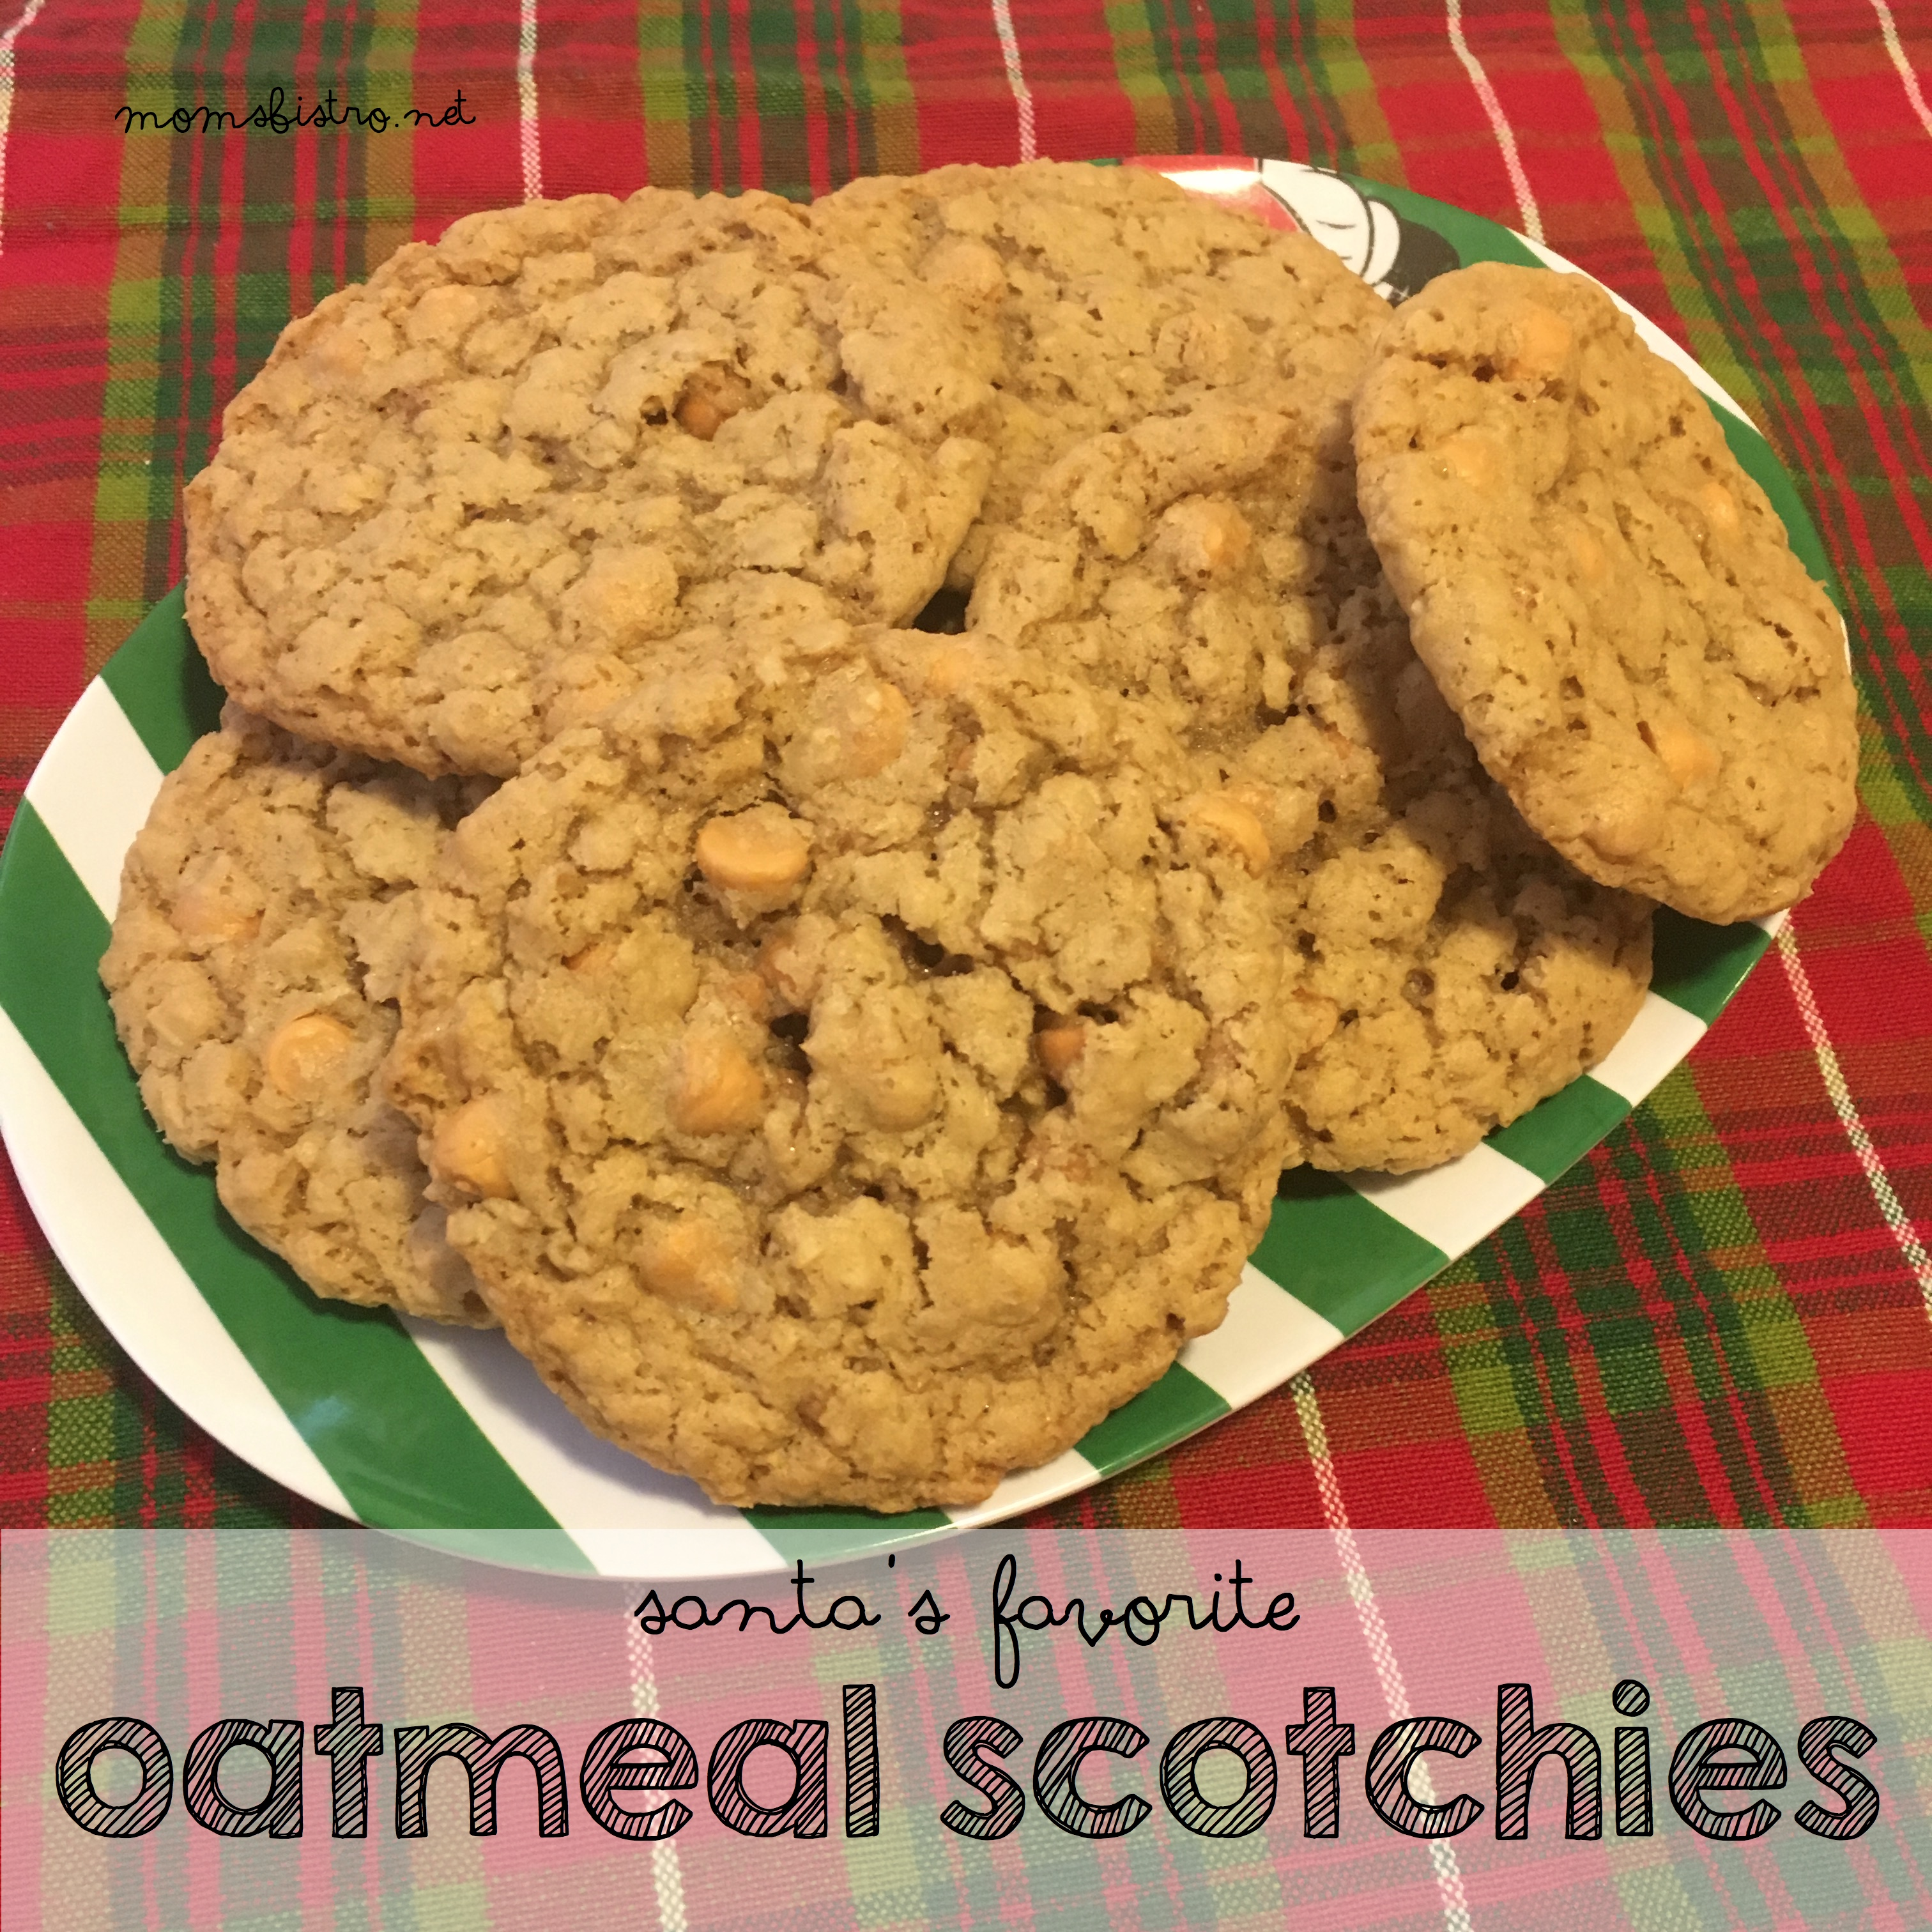 Santa's Favorite Cookies – Oatmeal Scotchies Recipe